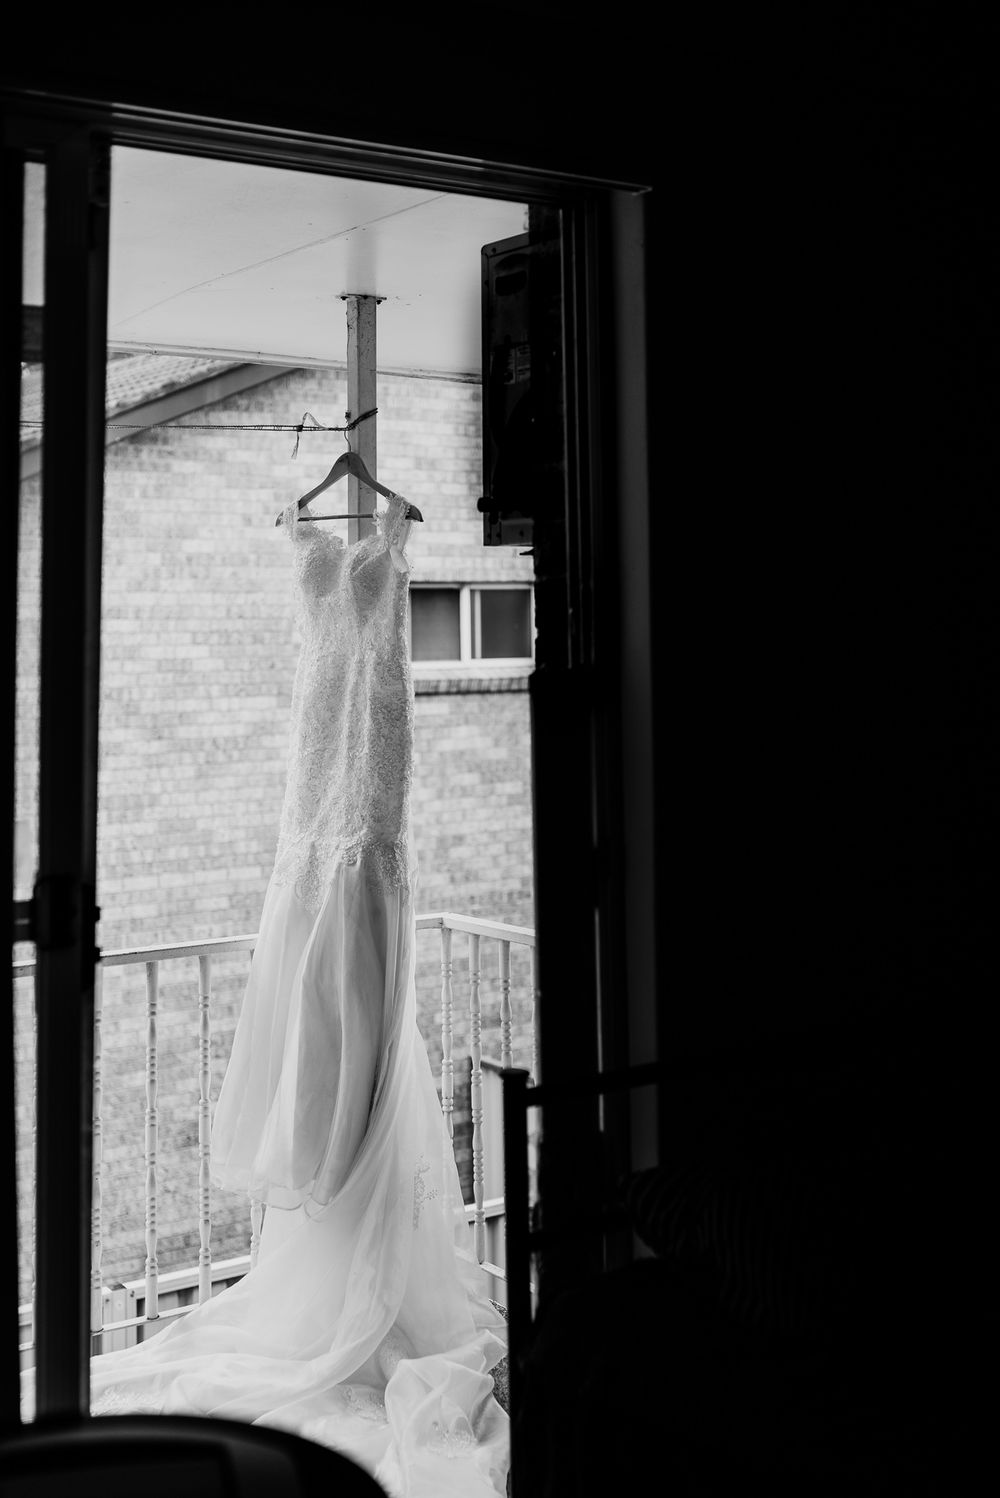 wedding dress on the hanger outside